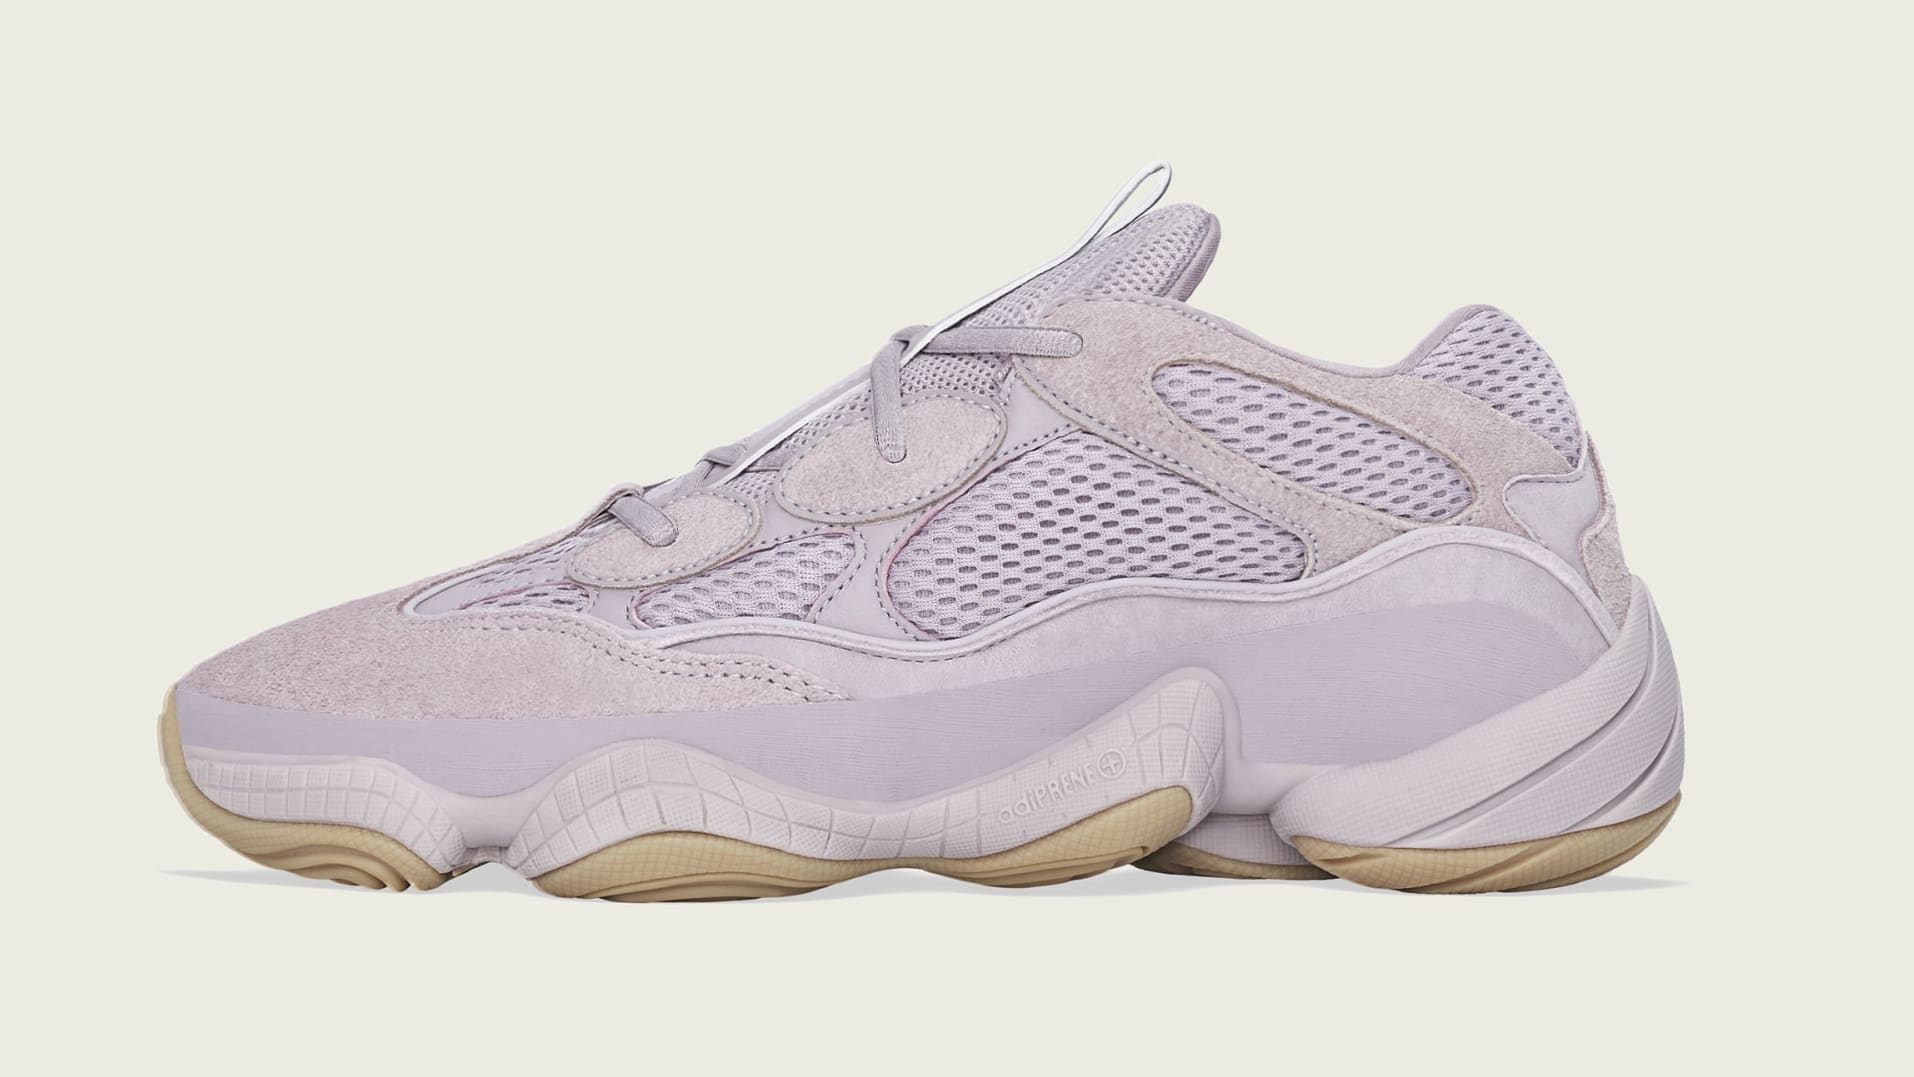 adidas-yeezy-500-soft-vision-fw2656-lateral